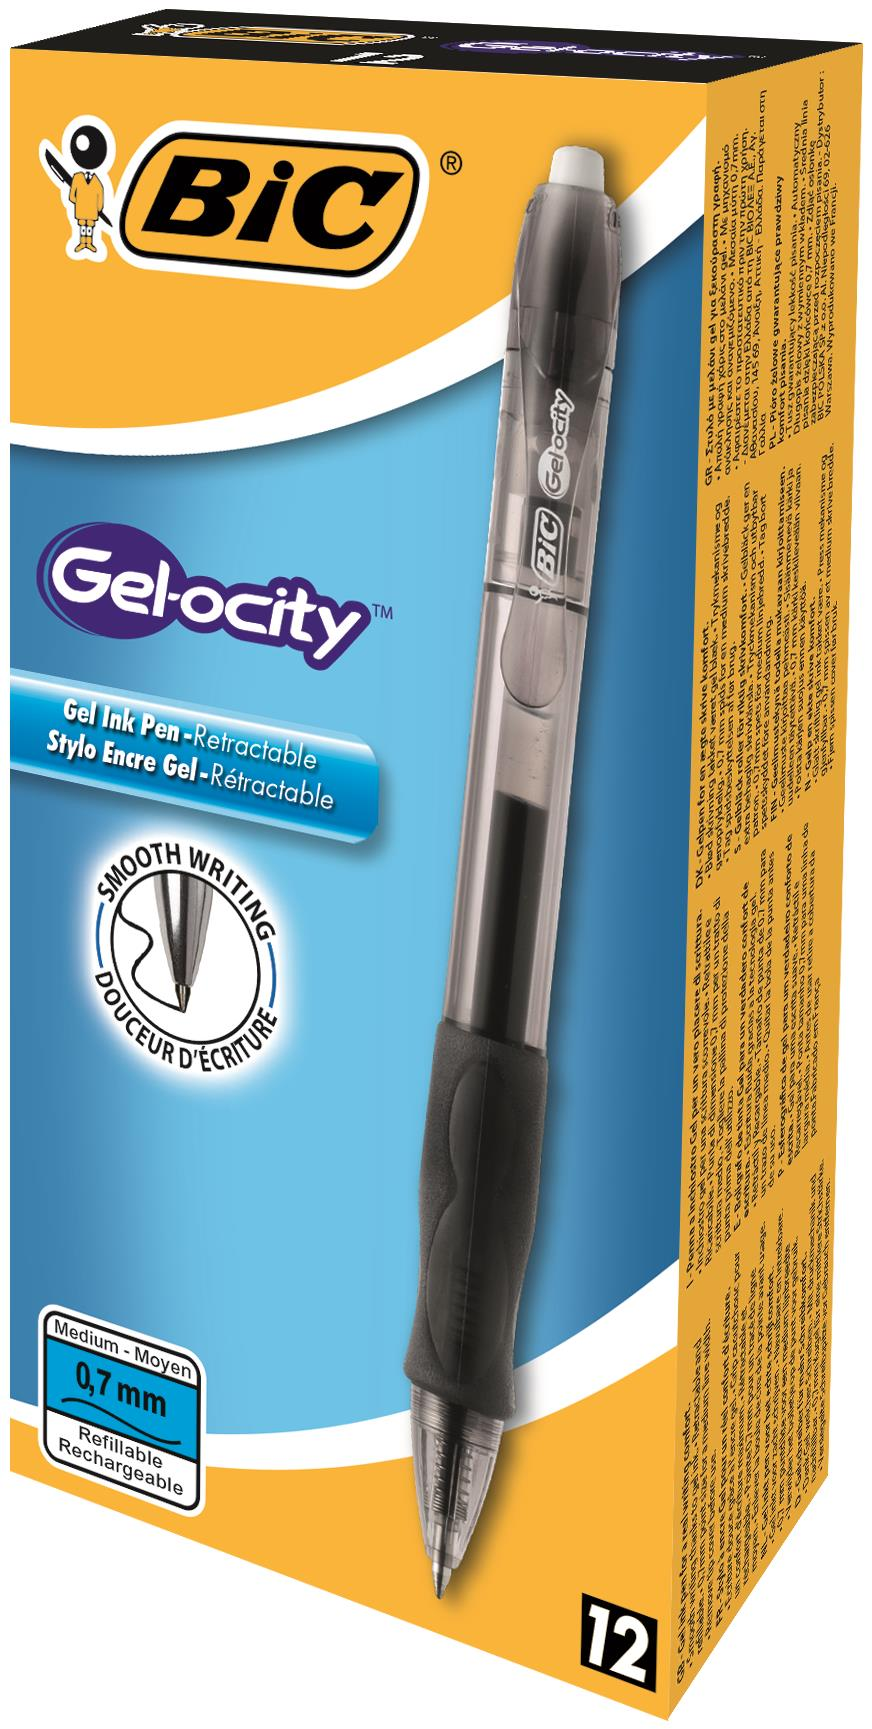 Bic Gelocity Gel Rollerball Pen Retractable Black Ref 829157 [Pack 12] [FREE Vel Pro Mech Pencil]